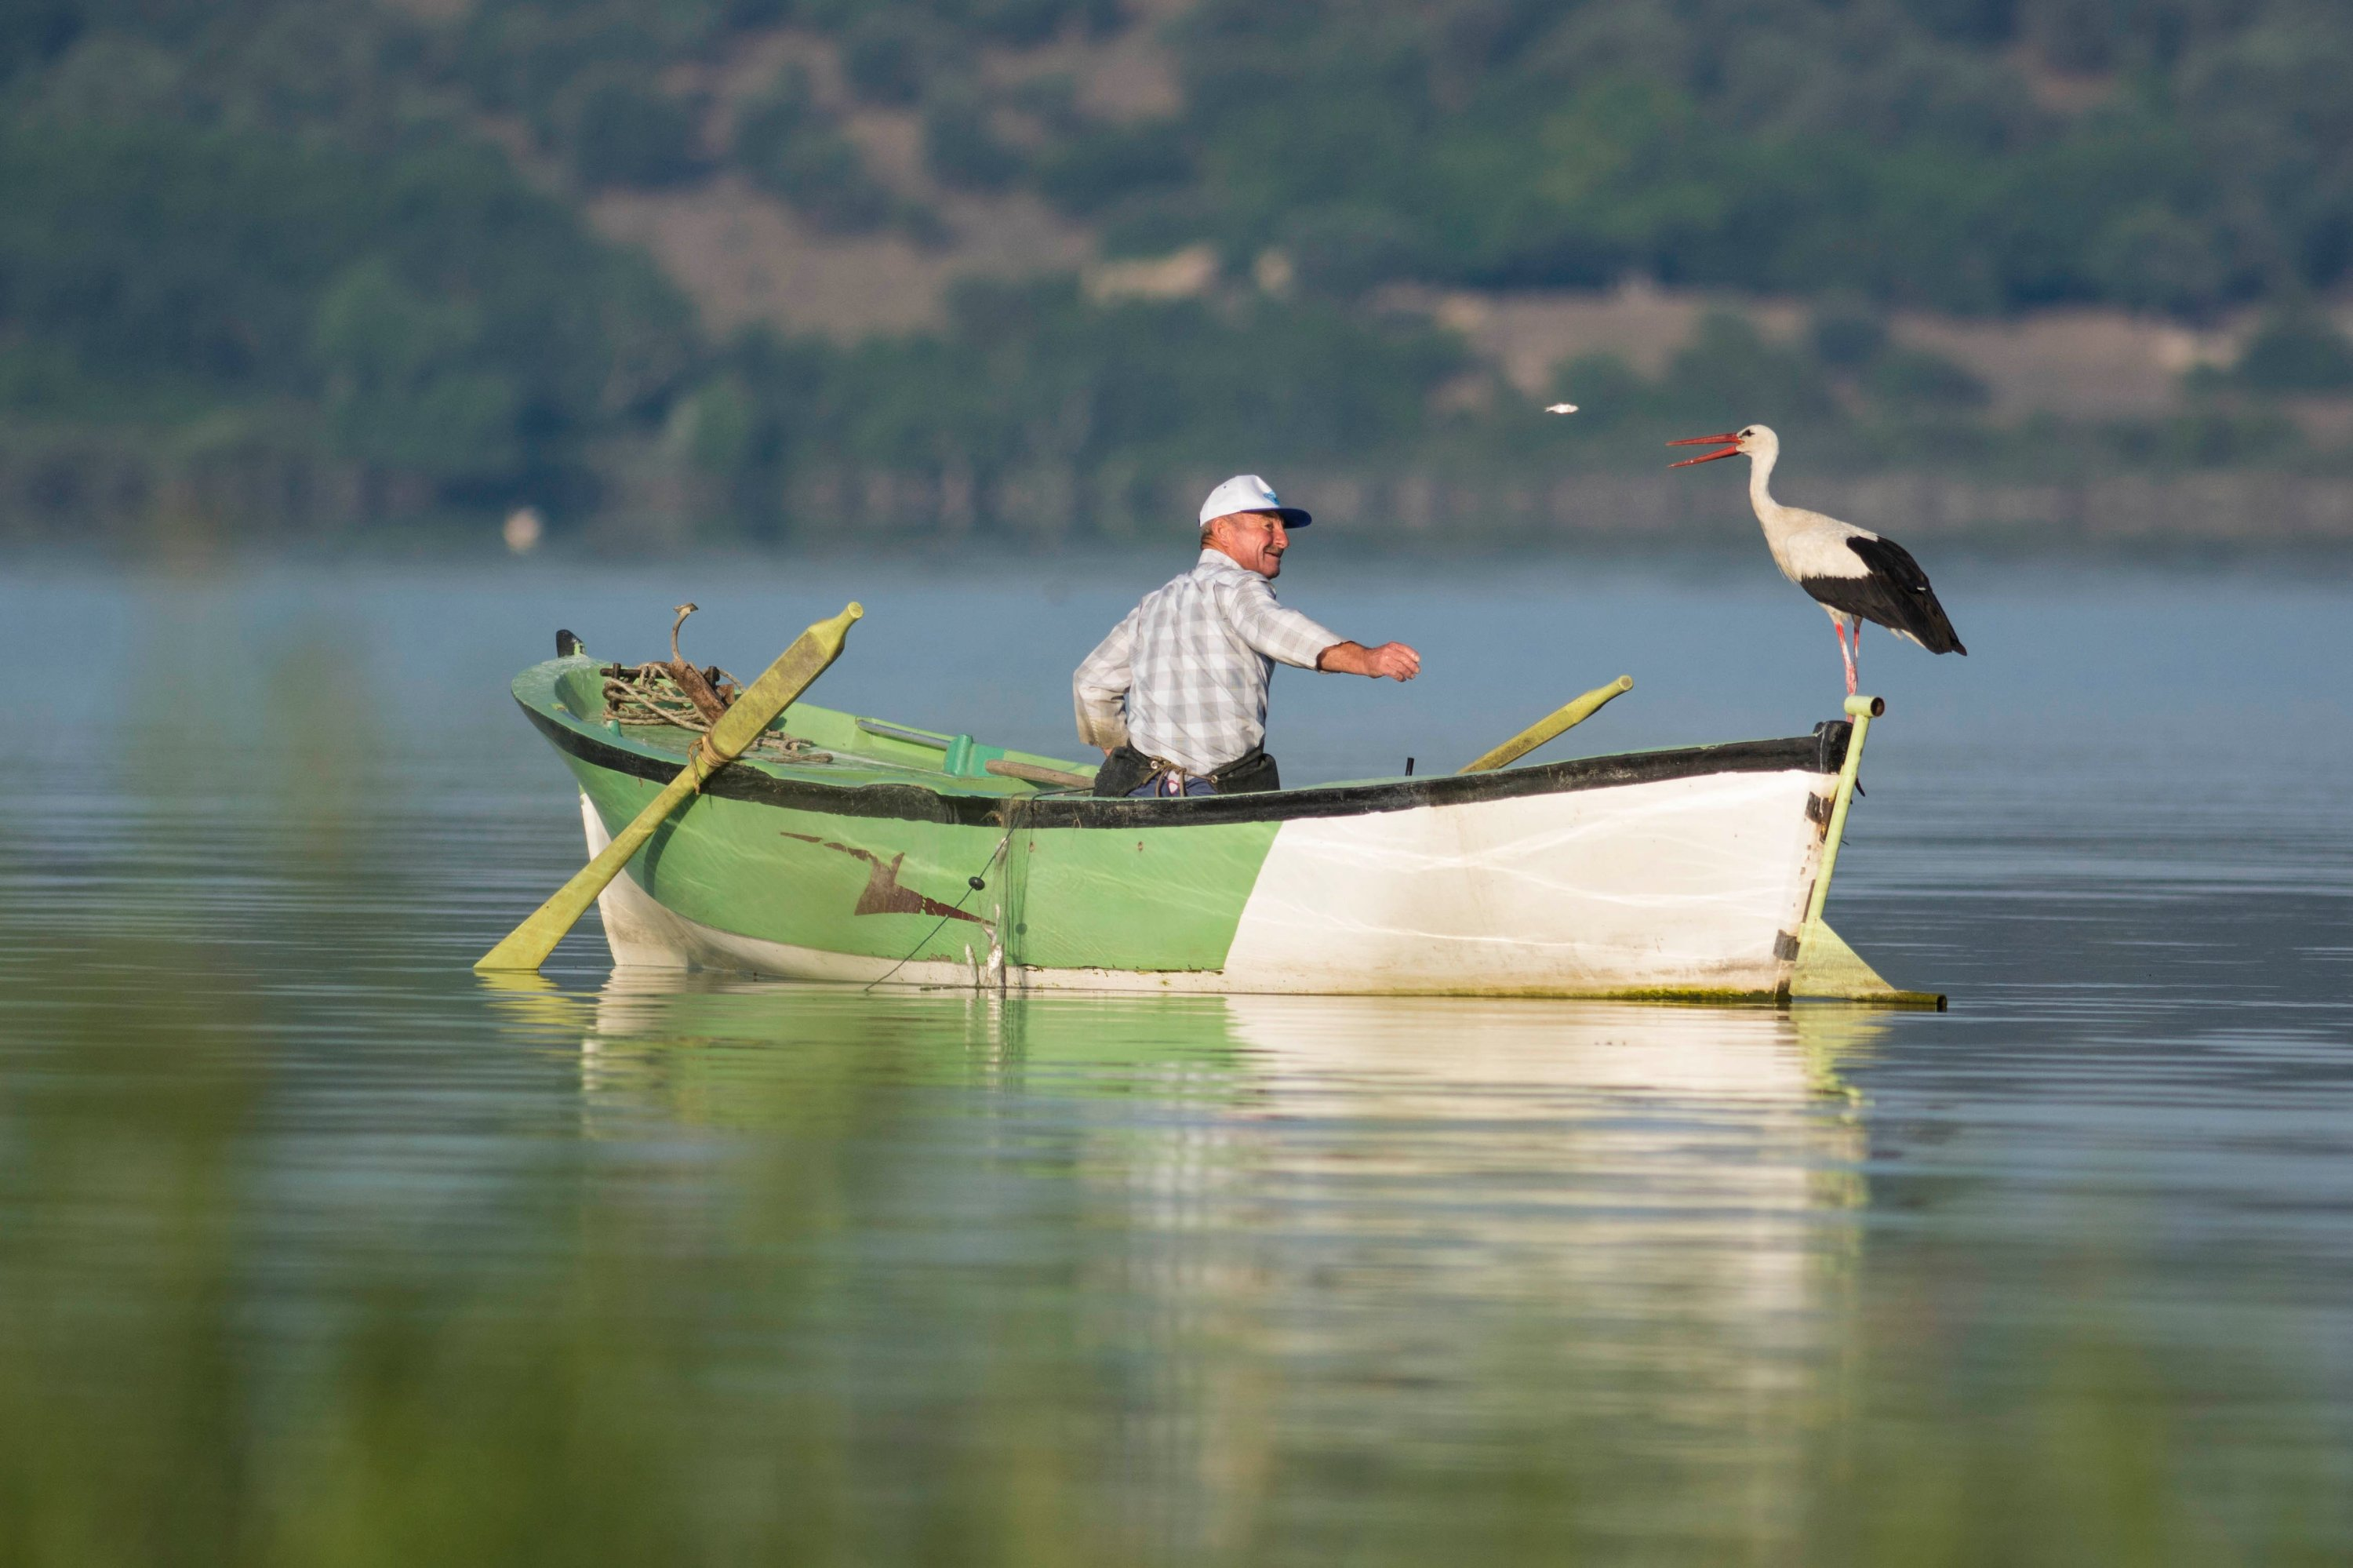 A fisherman throws a small fish to a white stork on Lake Uluabat, Karacabey, Bursa province, northwestern Turkey, Sept. 18, 2019. (IHA Photo)